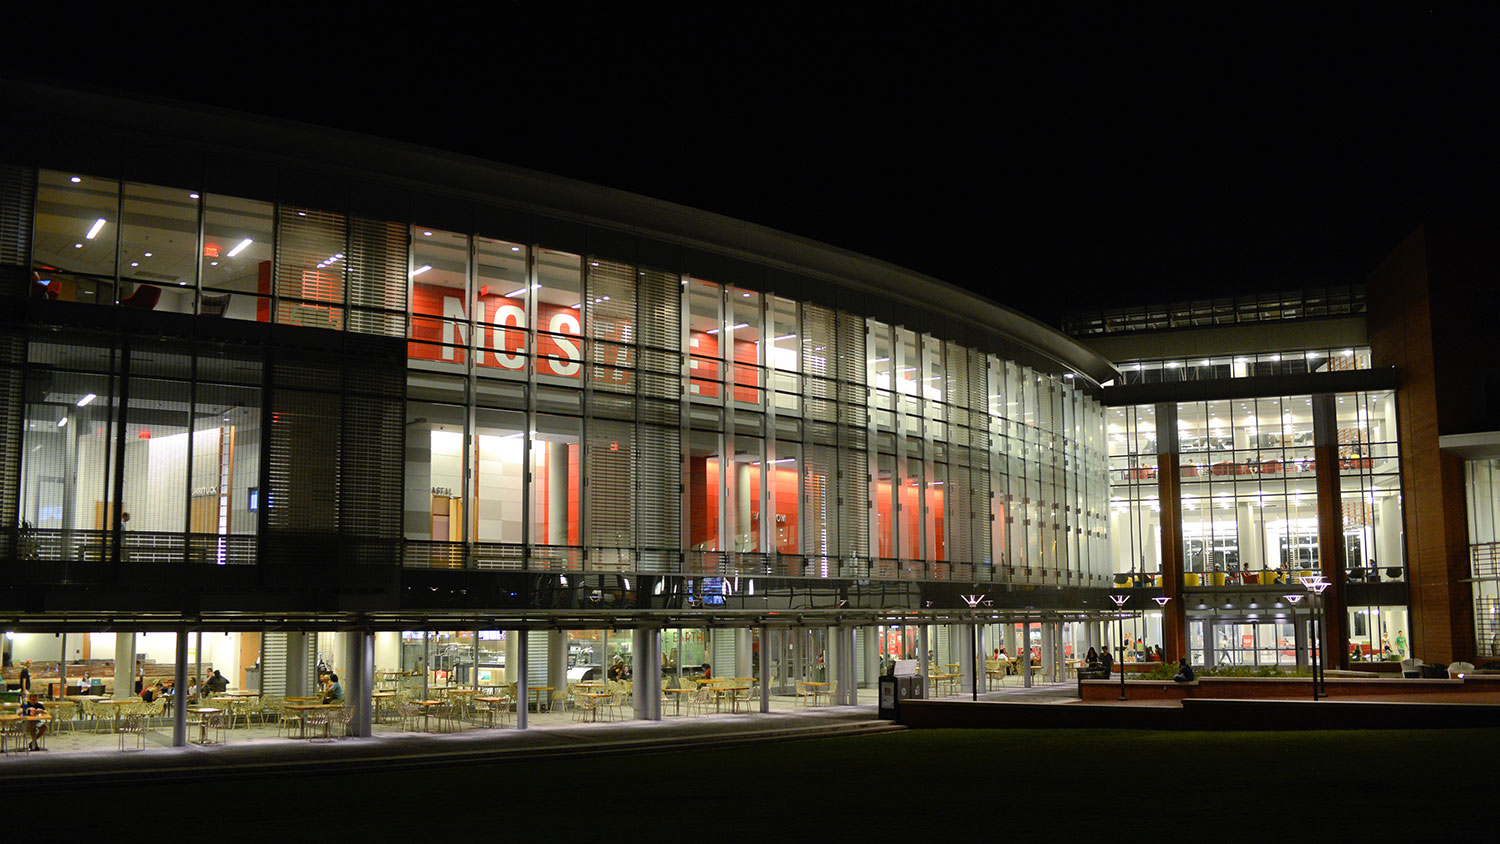 Talley Student Center at night